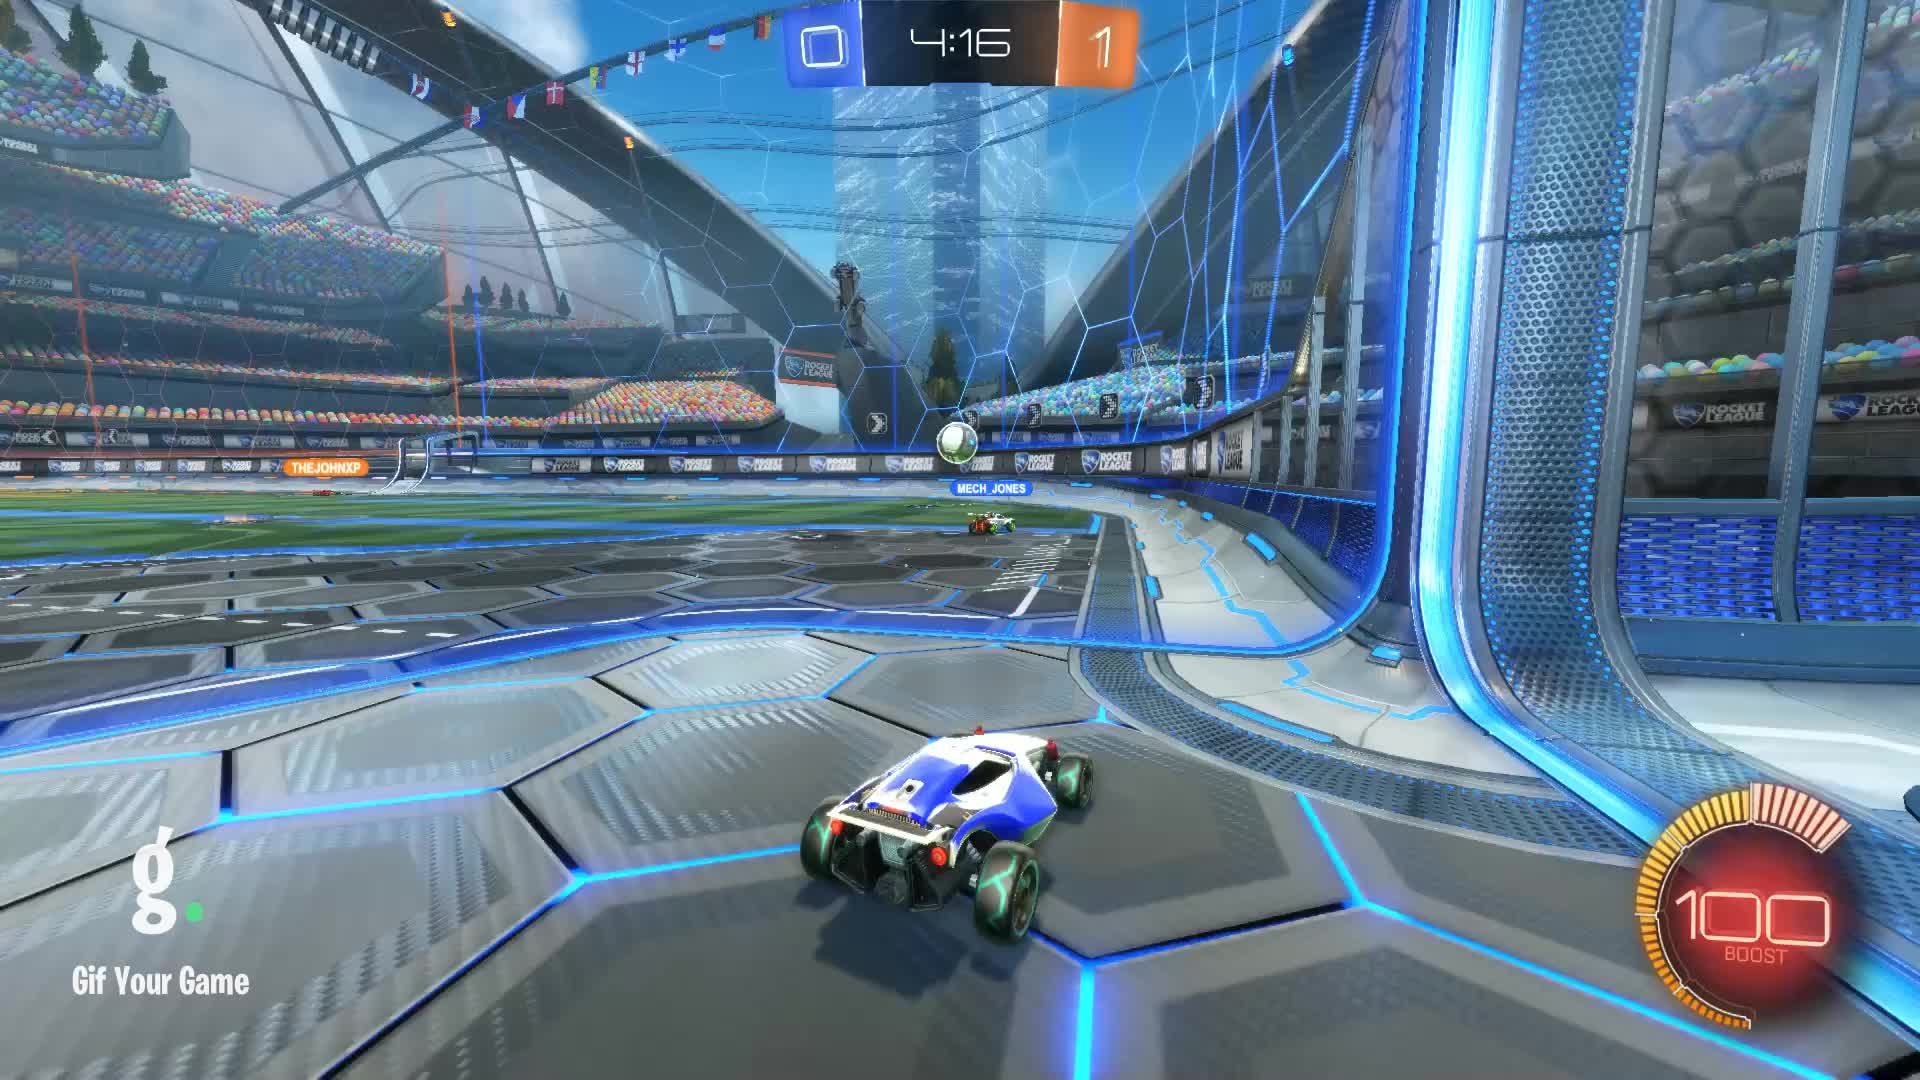 Gif Your Game, GifYourGame, Goal, PremierBromanov, Rocket League, RocketLeague, Goal 2: PremierBromanov GIFs